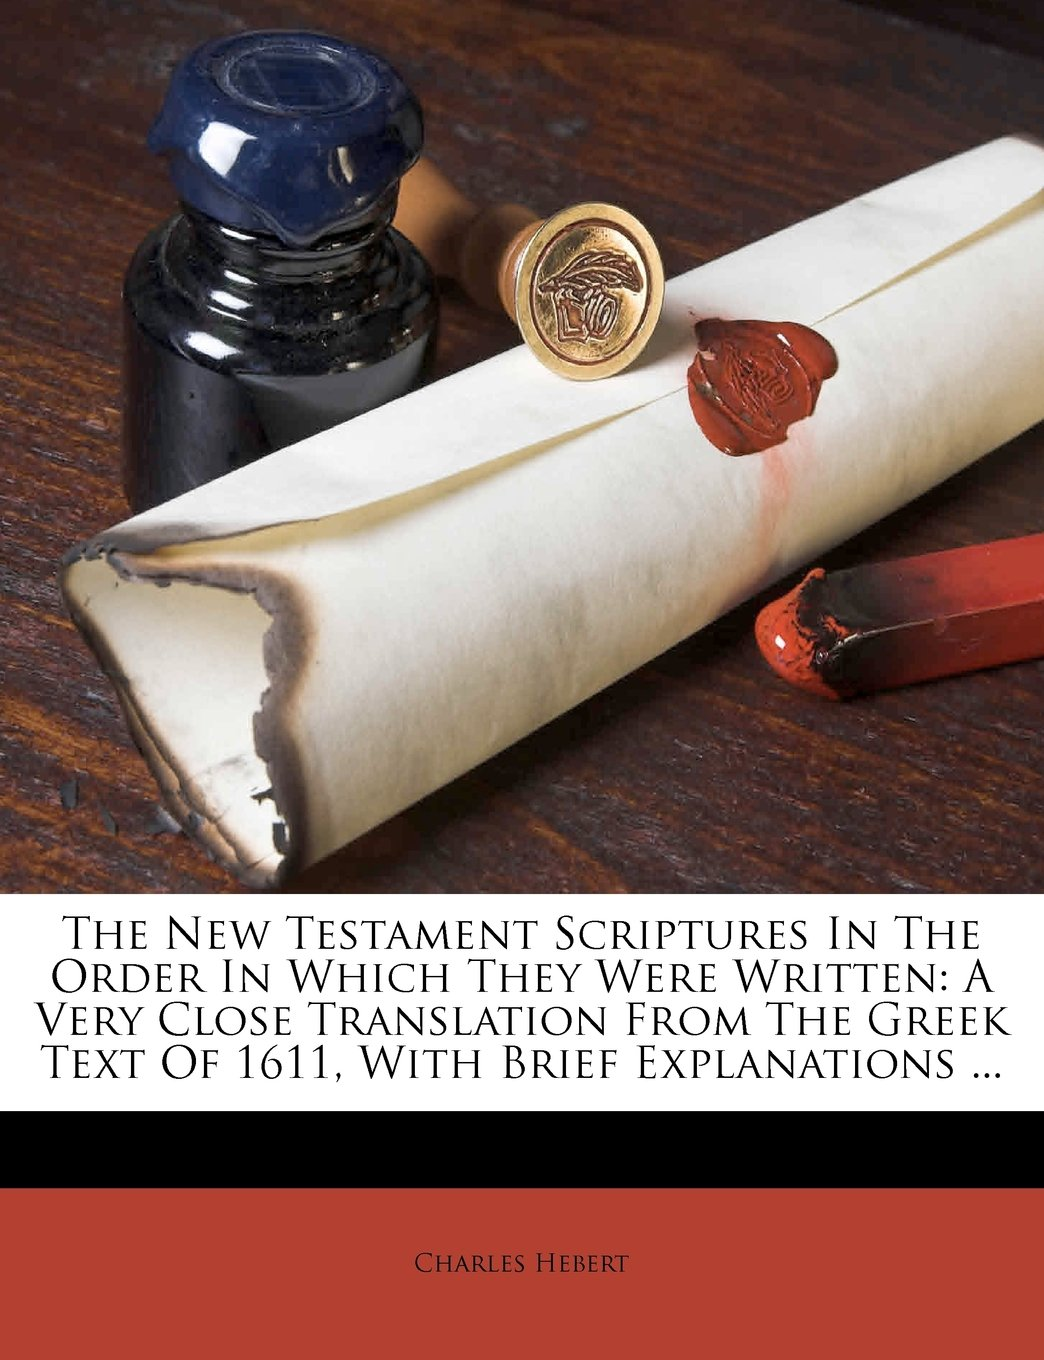 Read Online The New Testament Scriptures In The Order In Which They Were Written: A Very Close Translation From The Greek Text Of 1611, With Brief Explanations ... pdf